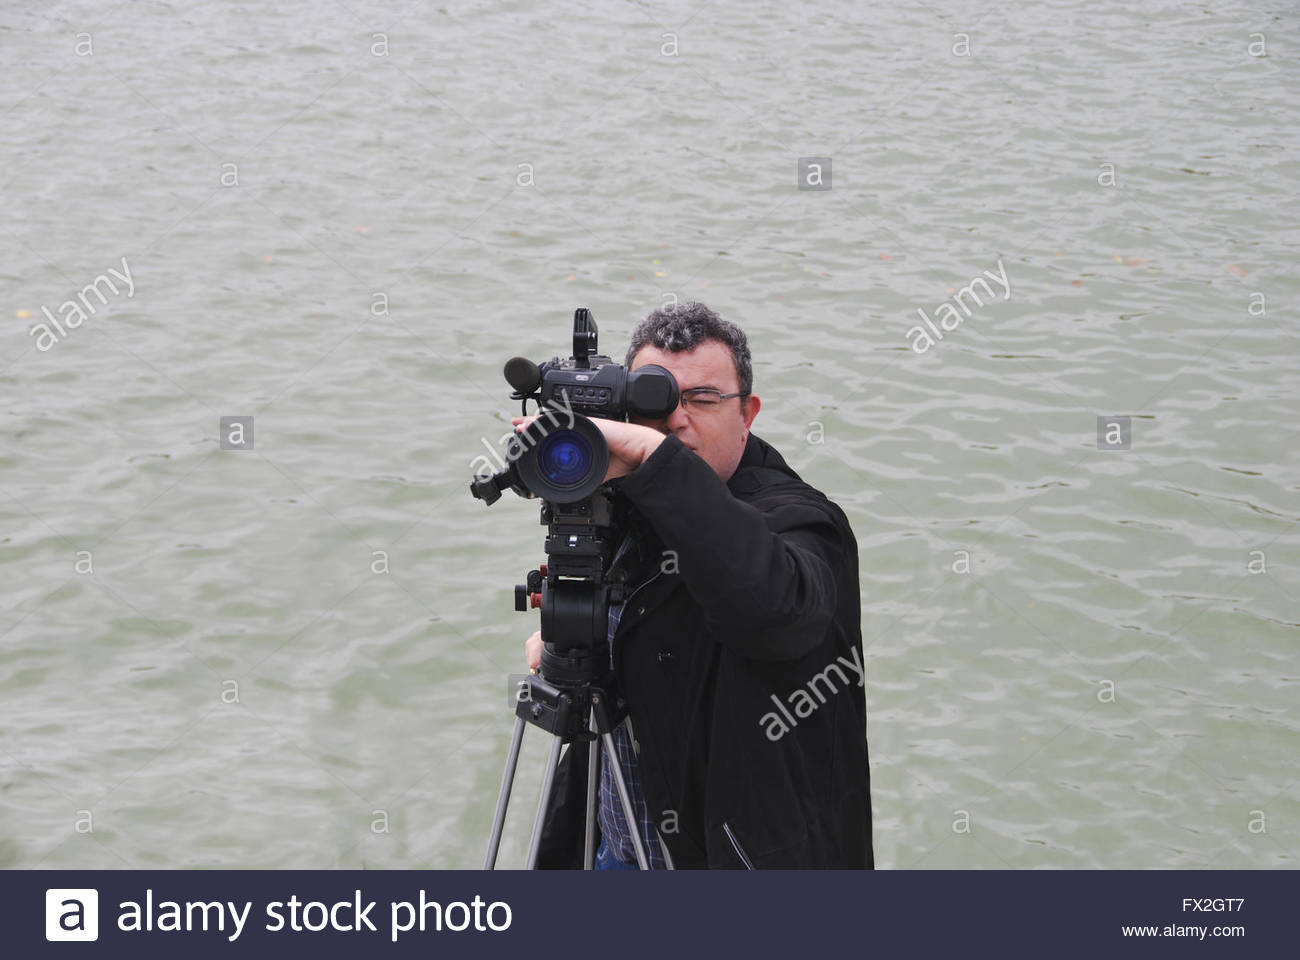 Professional cameraman with video camera in shooting process. Digital media - Stock Image